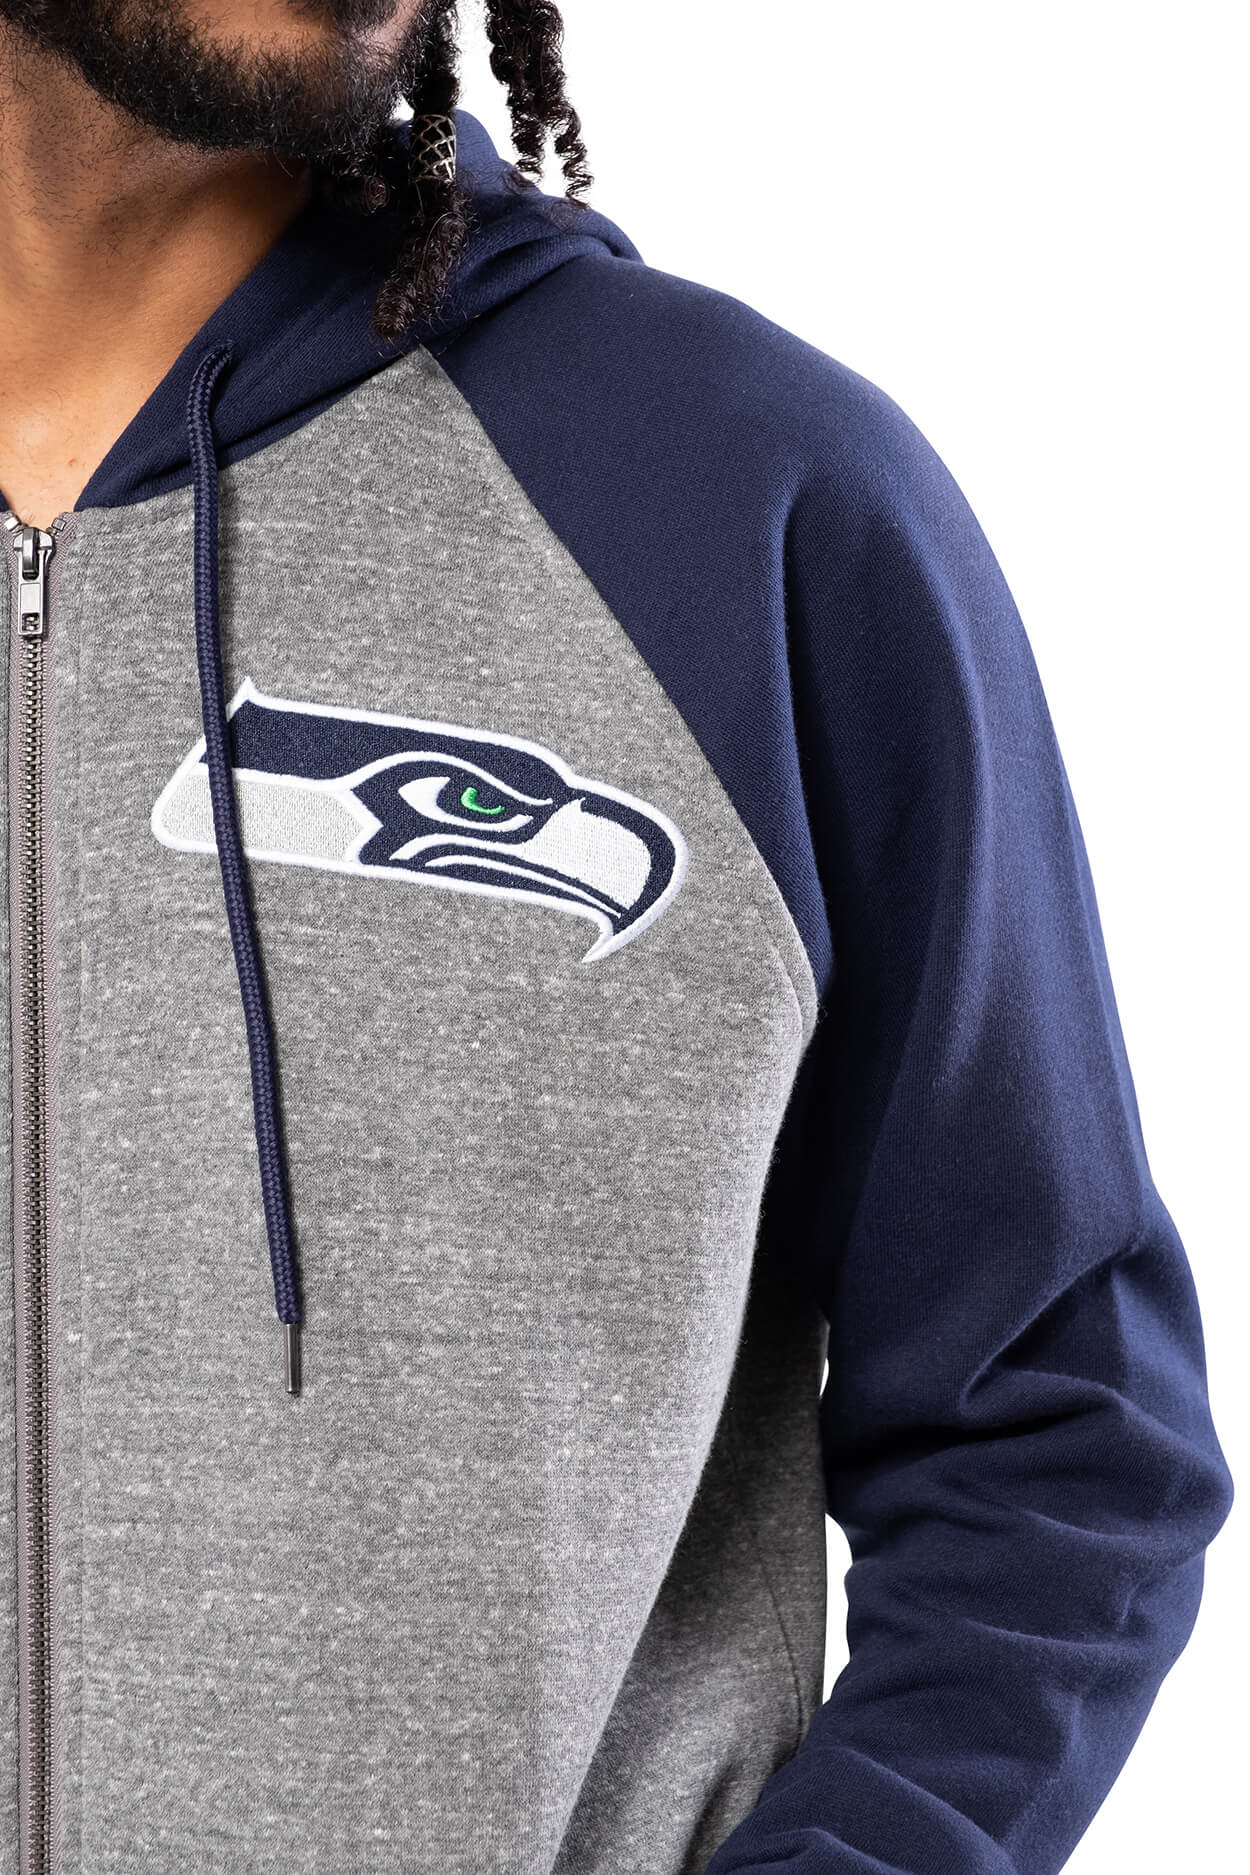 NFL Seattle Seahawks Men's Full Zip Hoodie|Seattle Seahawks